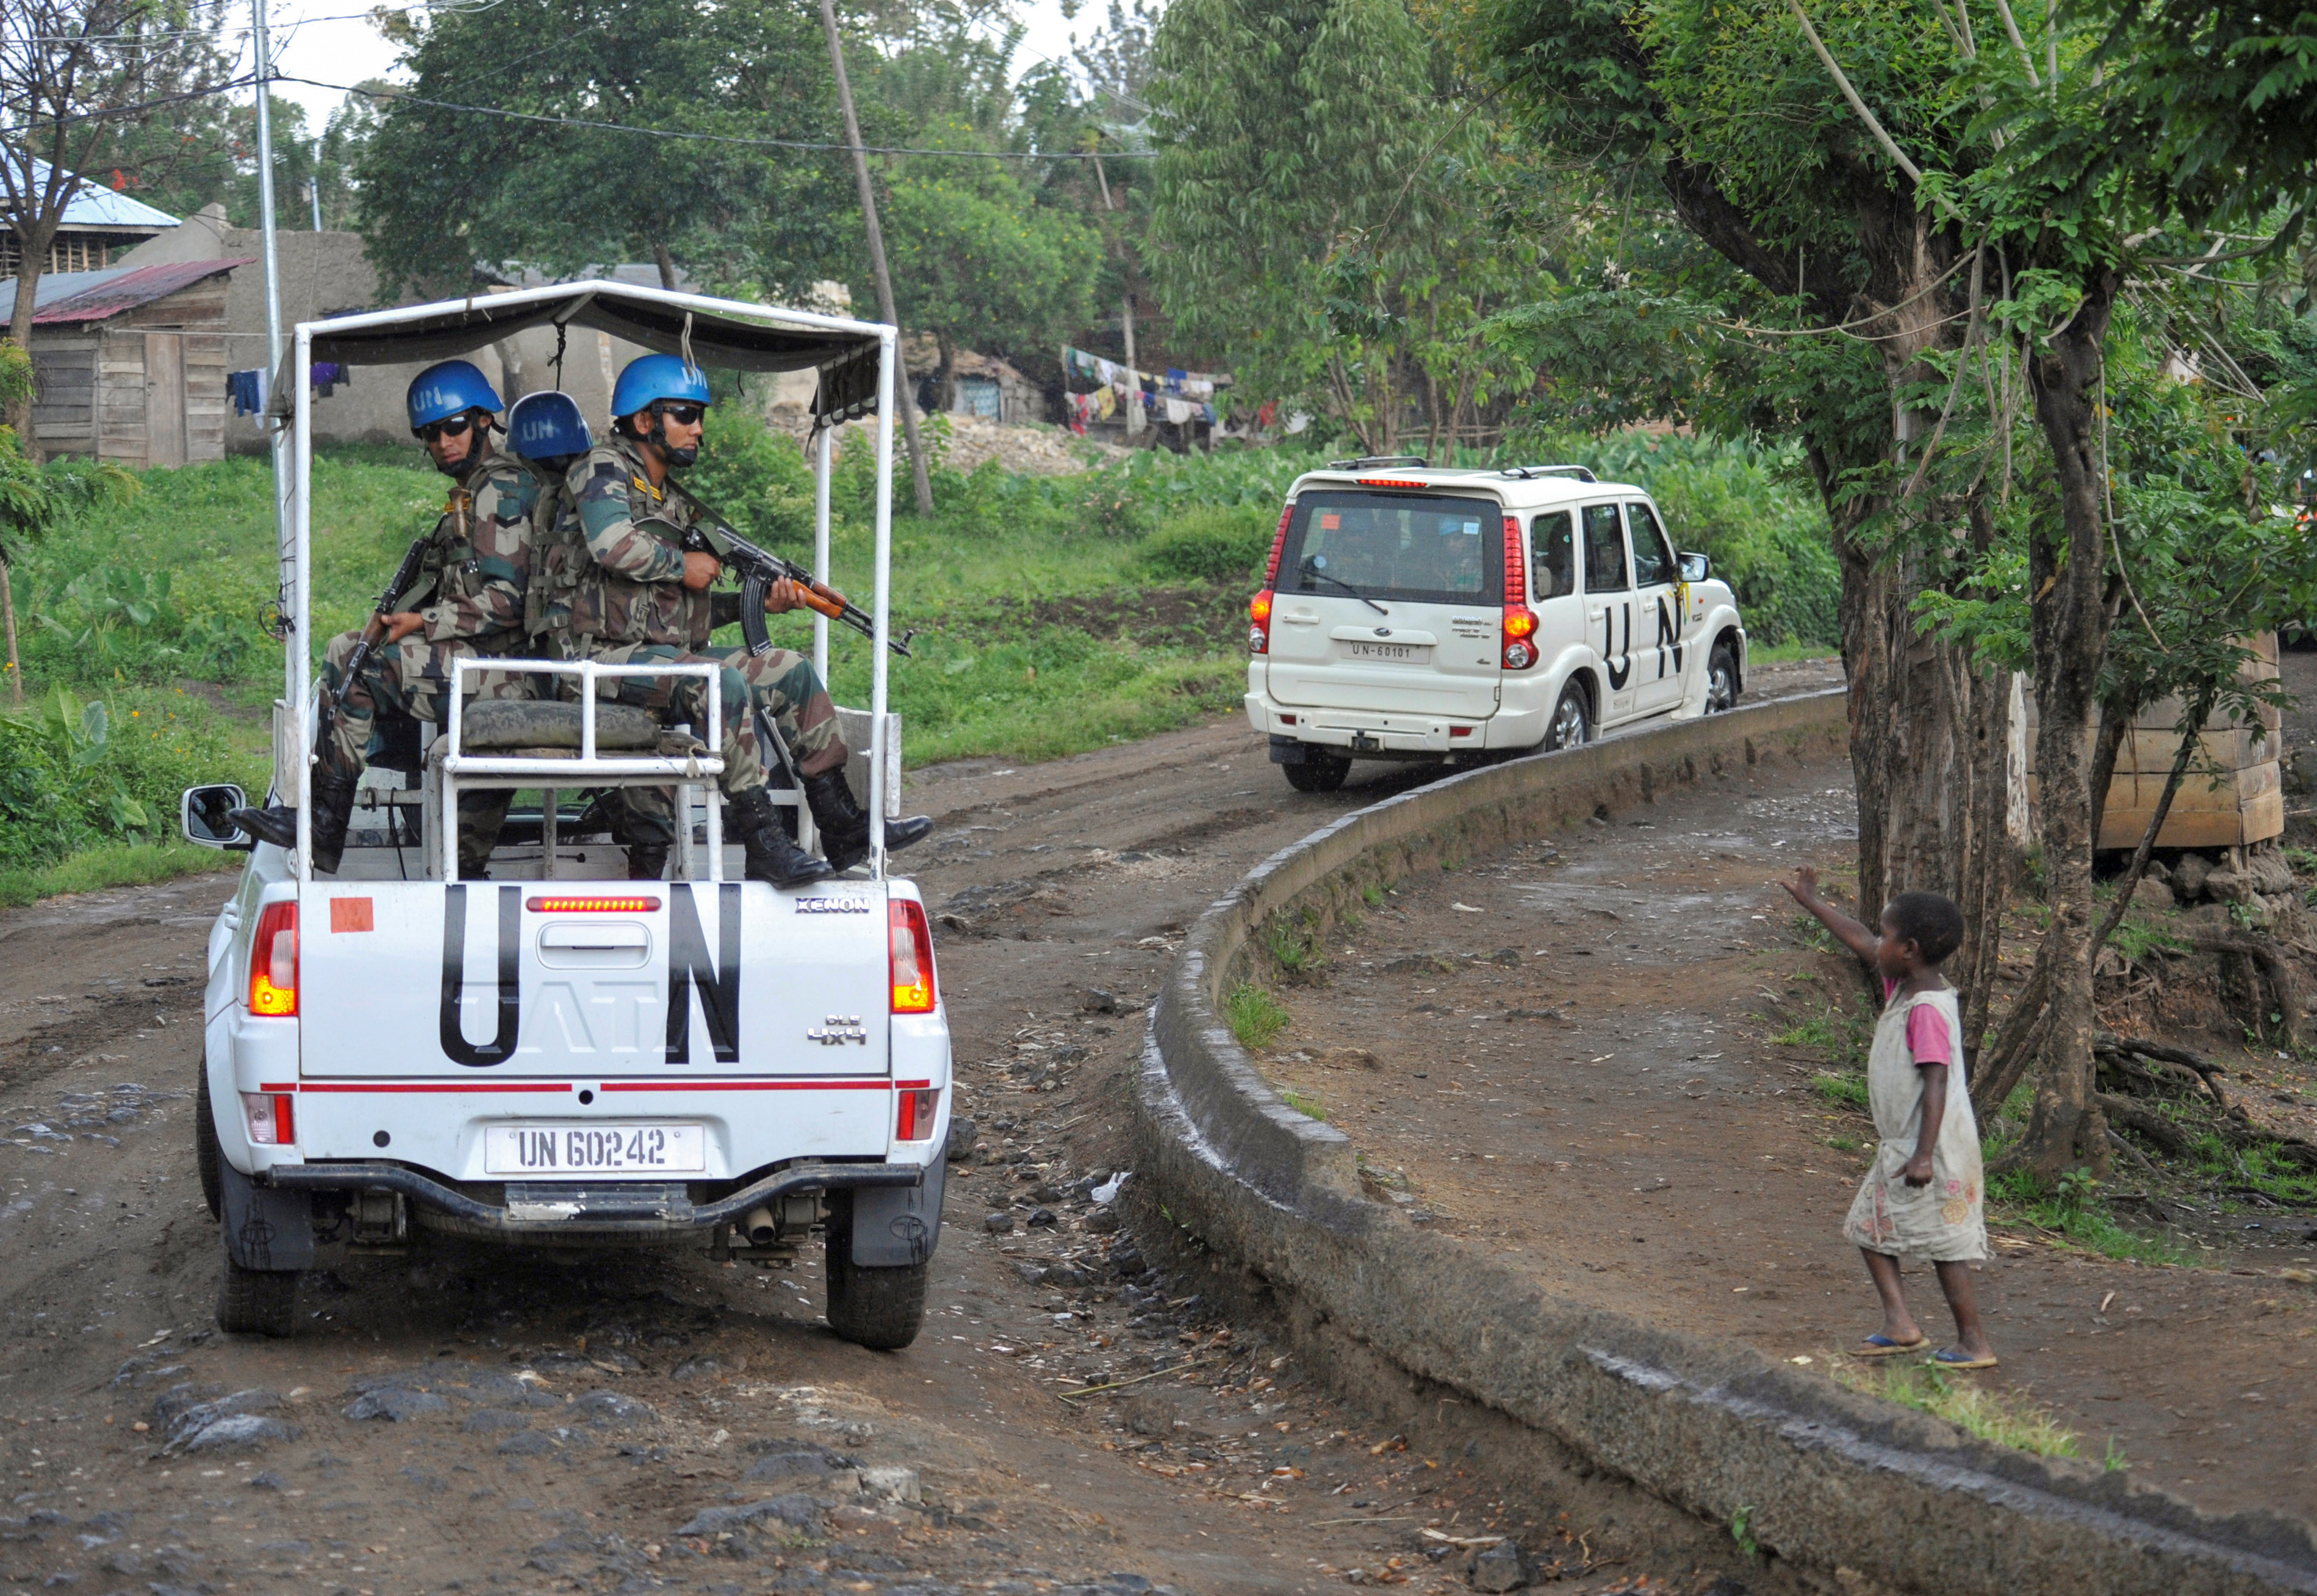 Congo is one of the countries with the highest number of UN peacekeepers.